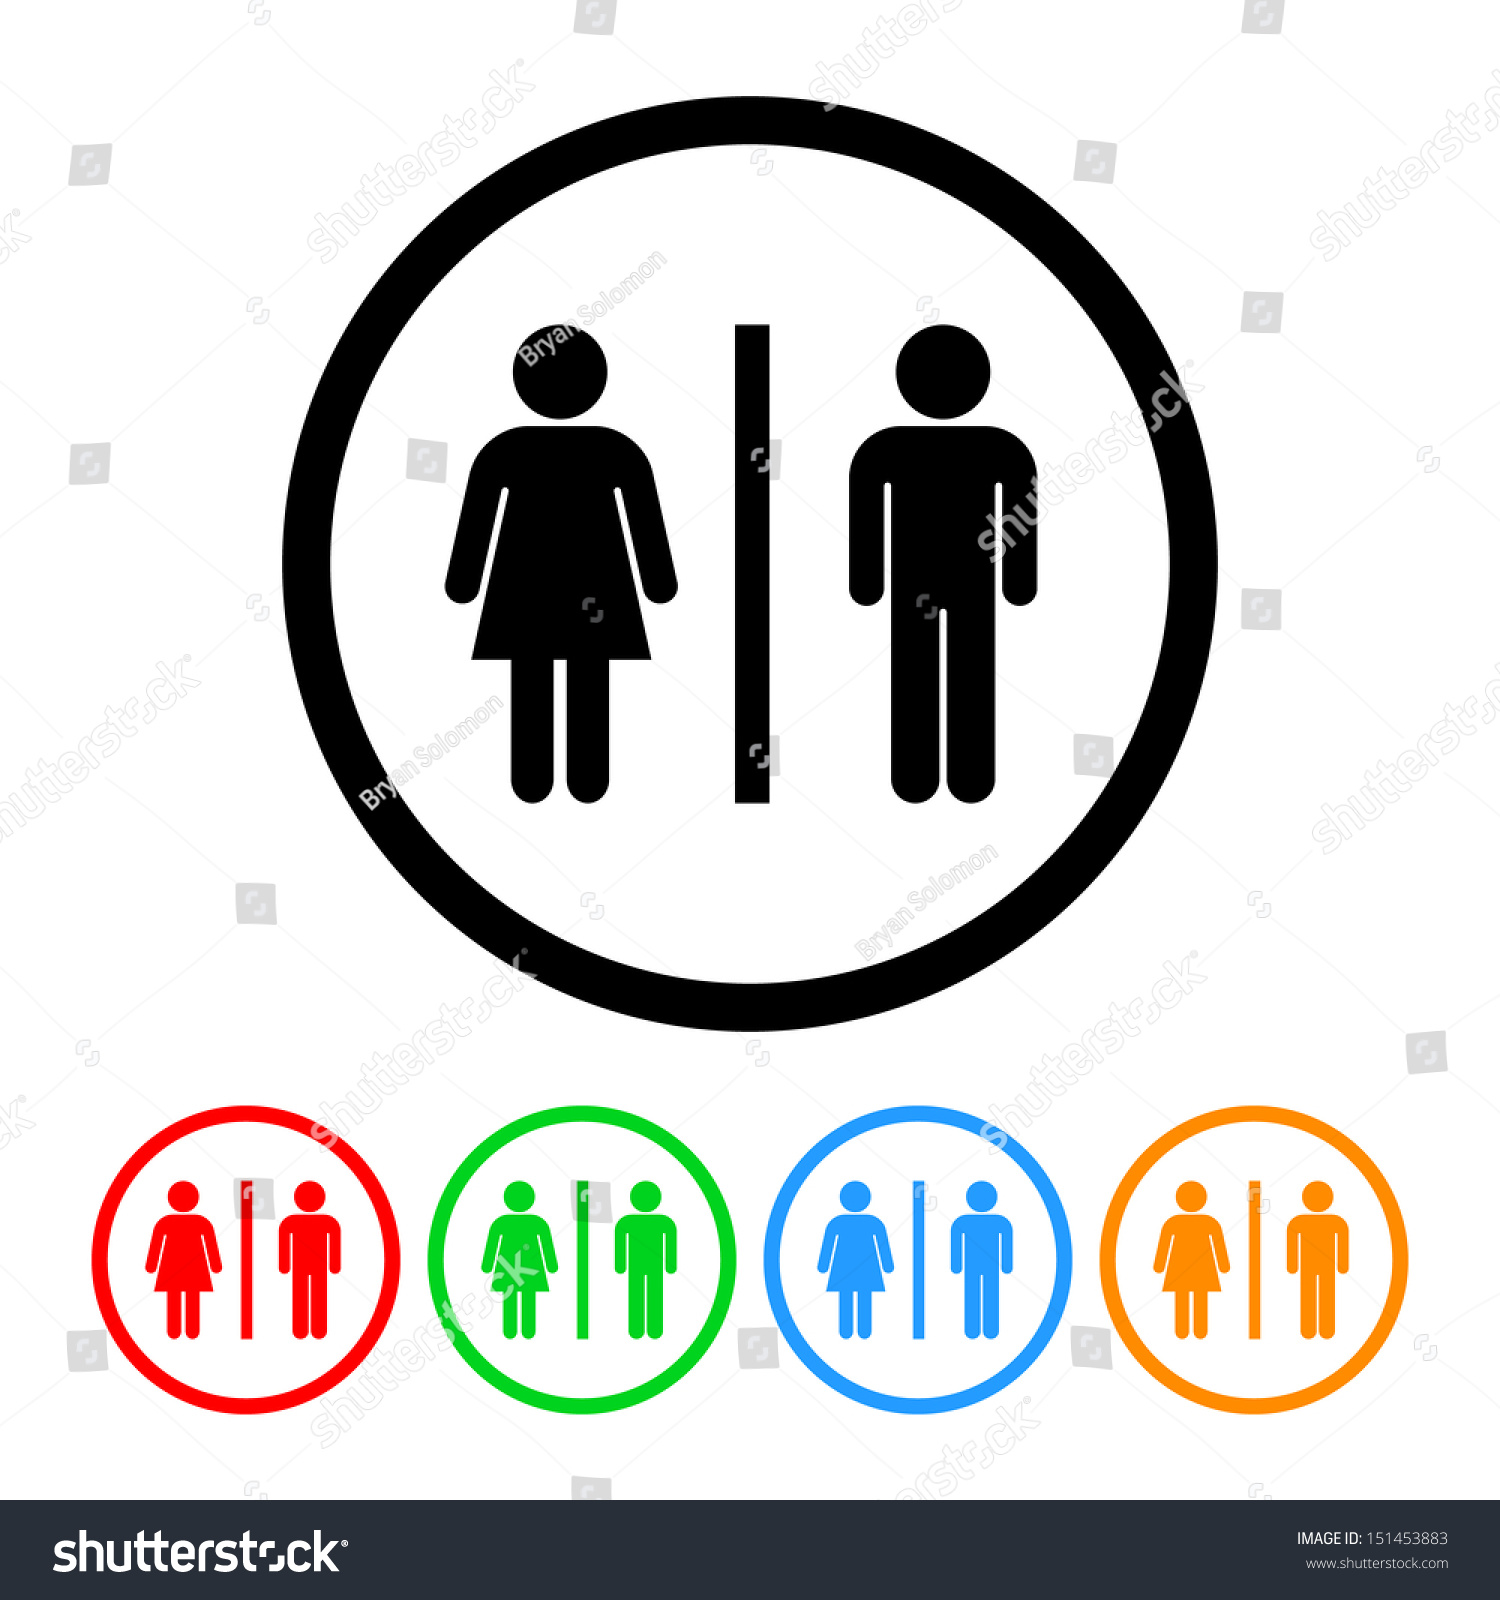 Male female bathroom sign images - Male And Female Restroom Symbol Icon